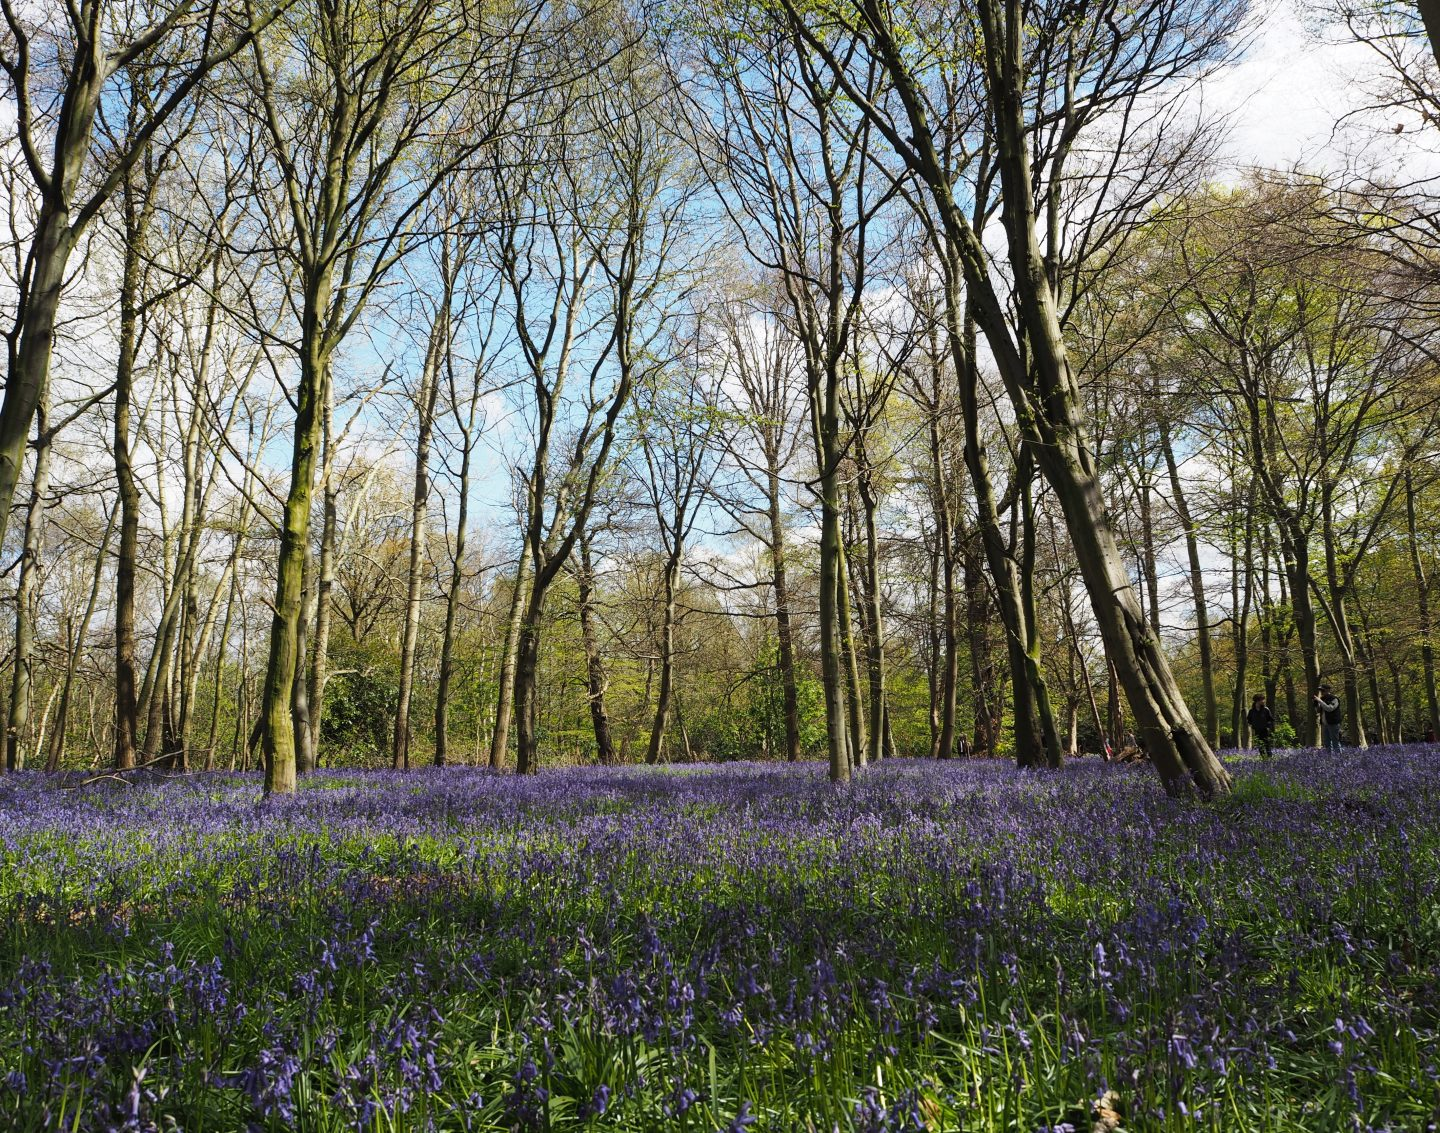 Walking among the bluebells